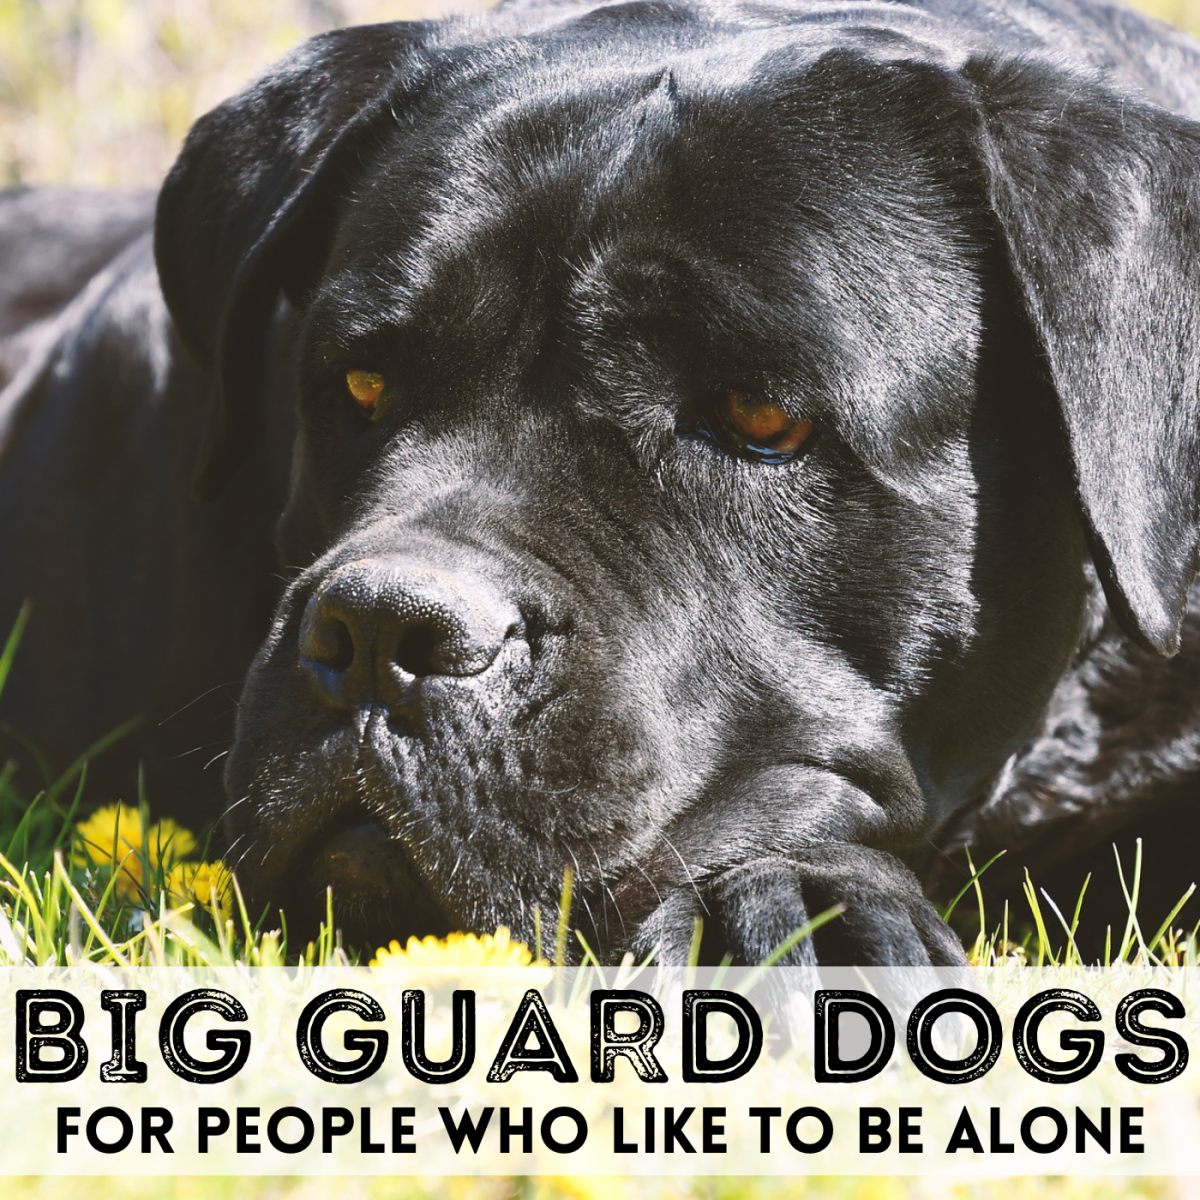 Want to be left alone? Large guard dogs, like this Cane Corso, may make unwanted visitors think twice.